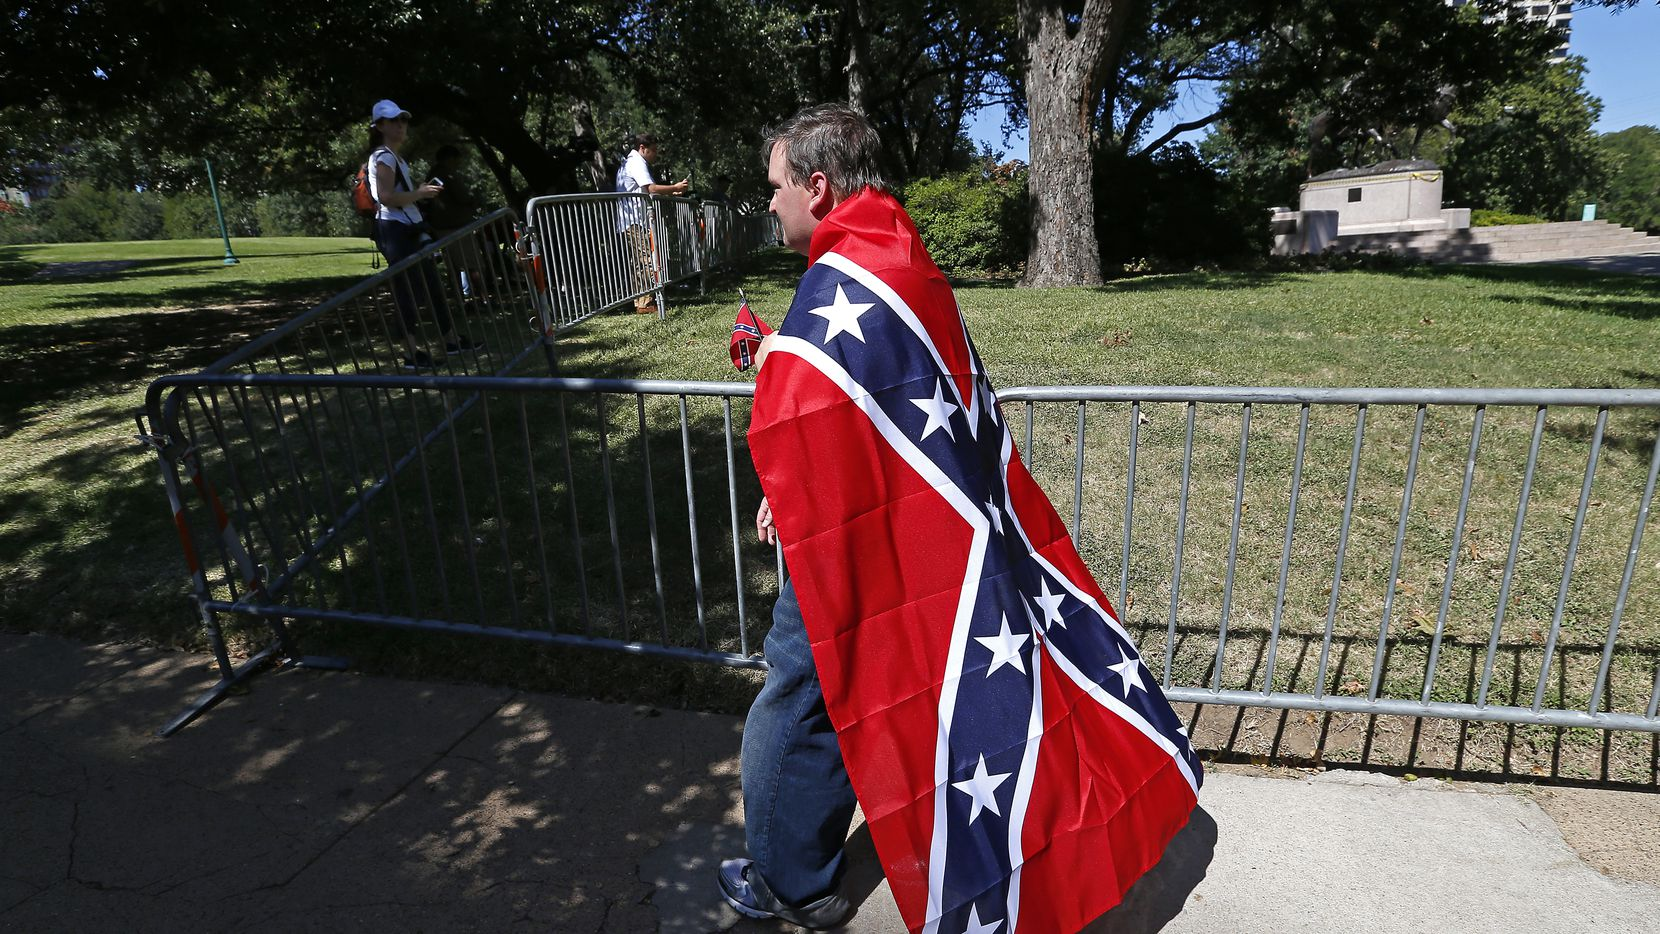 William Rutledge III, wrapped in a Confederate flag, walks on North Hall Street near the statue of Robert E. Lee at Robert E. Lee Park in Dallas on Thursday, Sept. 7, 2017.